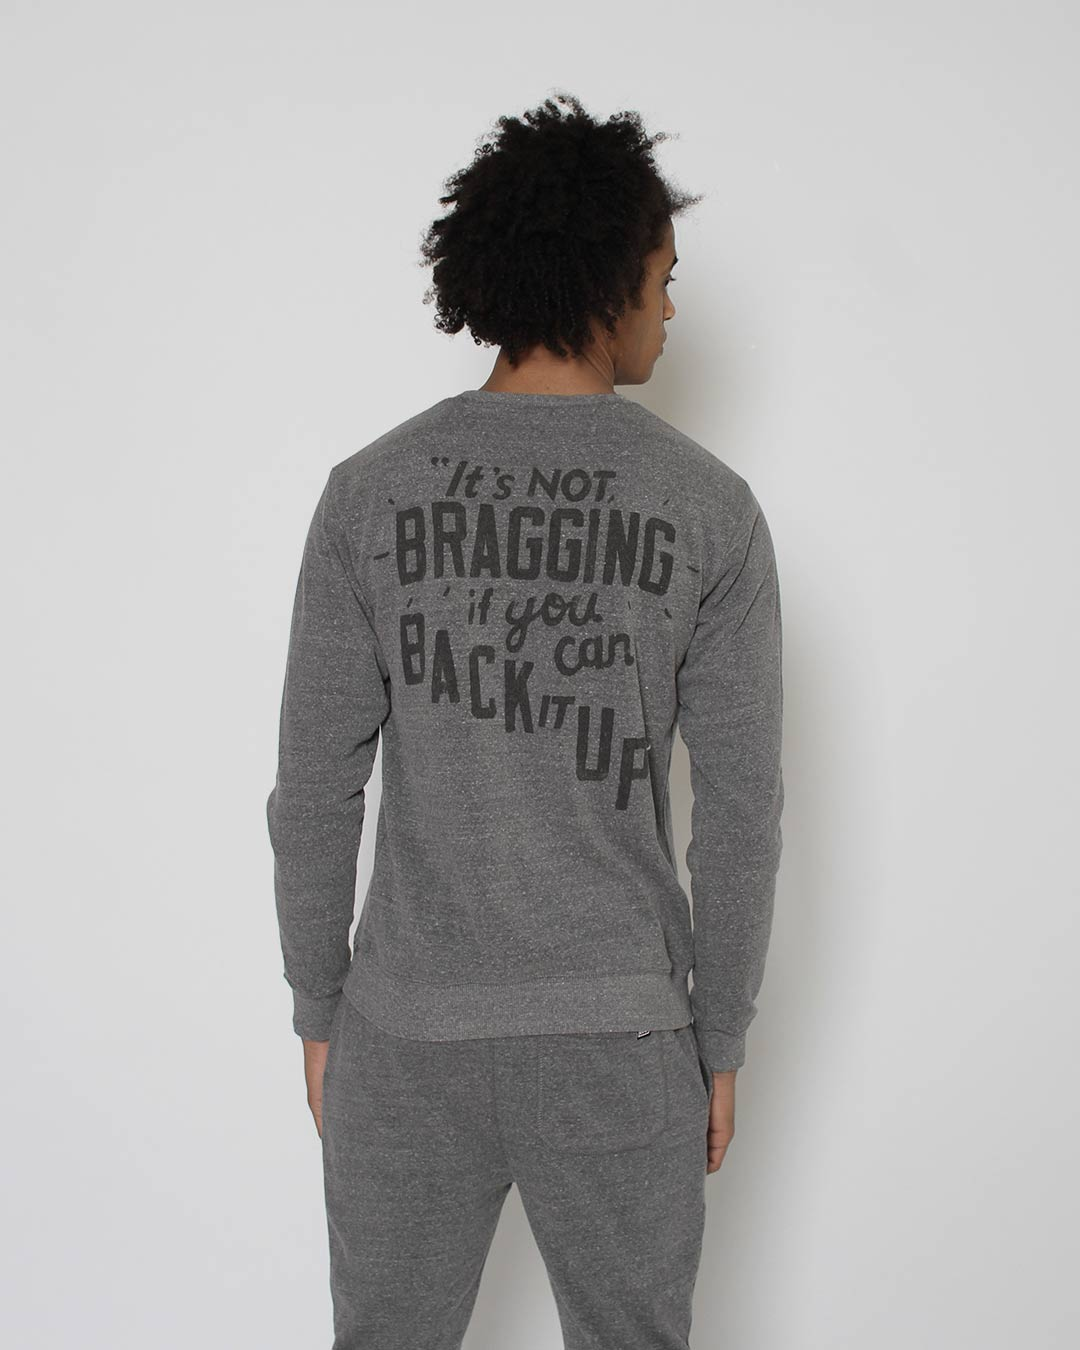 Ali Brag Quote Sweatshirt - Roots of Inc dba Roots of Fight